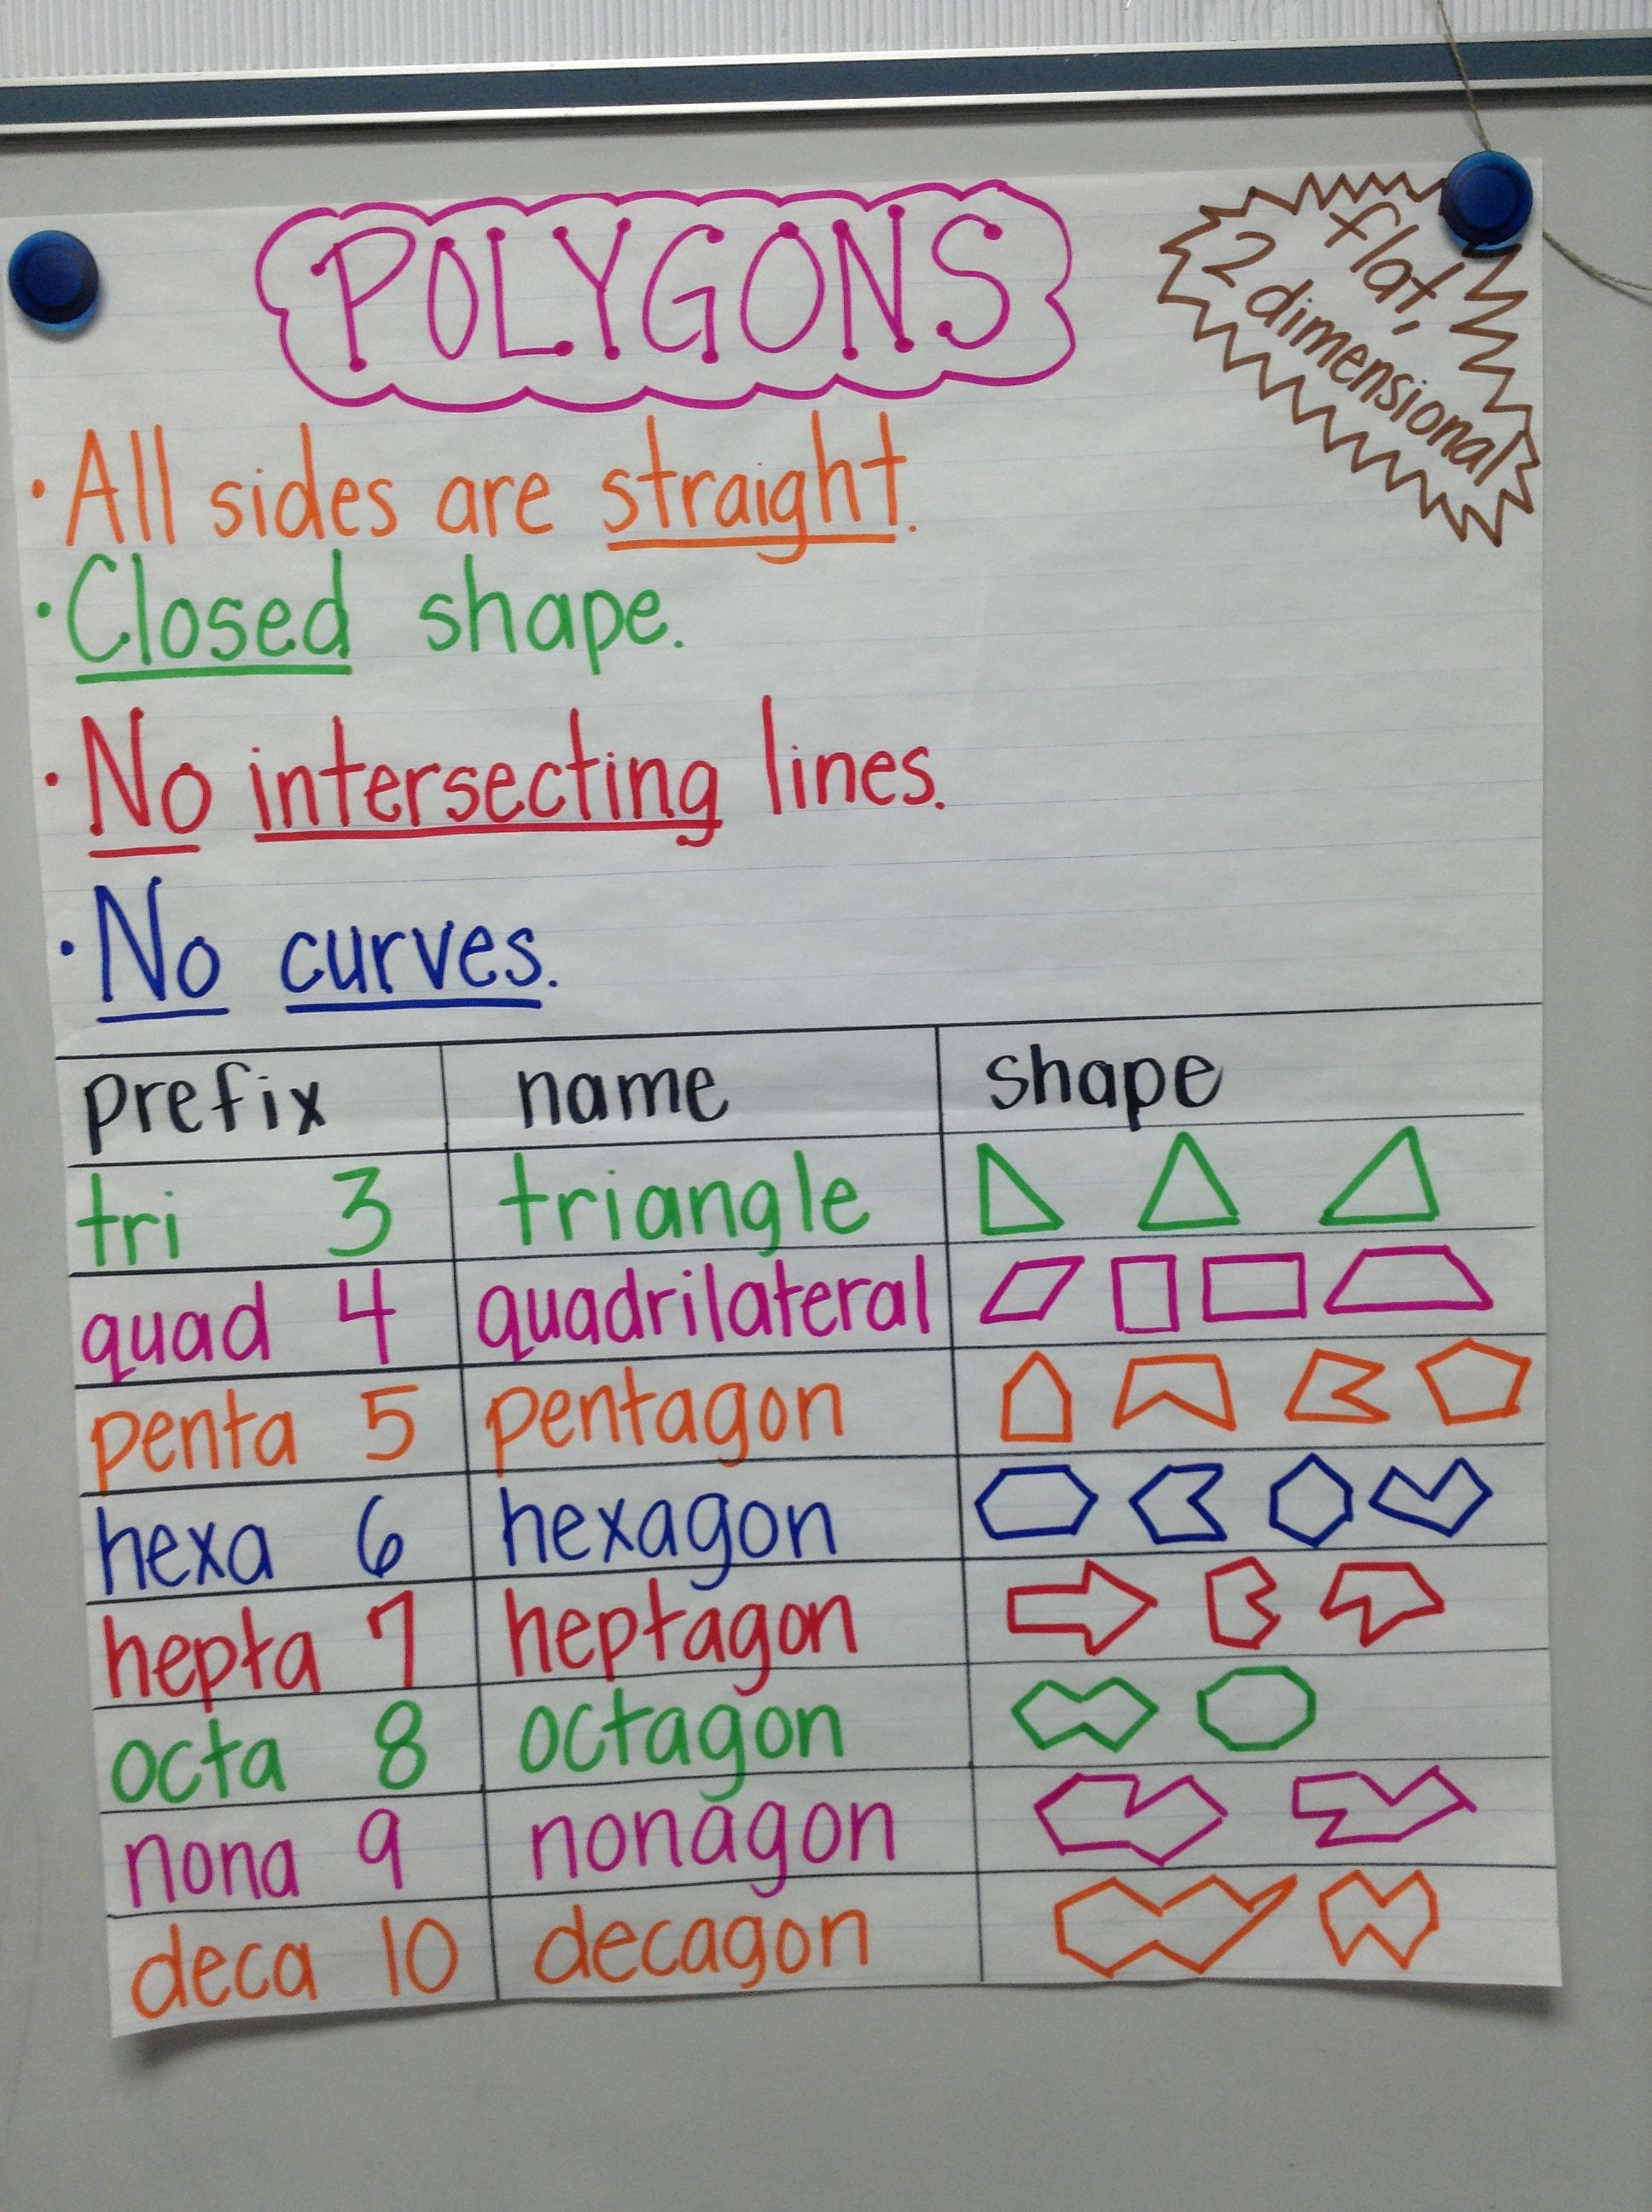 Polygon anchor chart | Math charts, Polygons anchor chart, Math ...